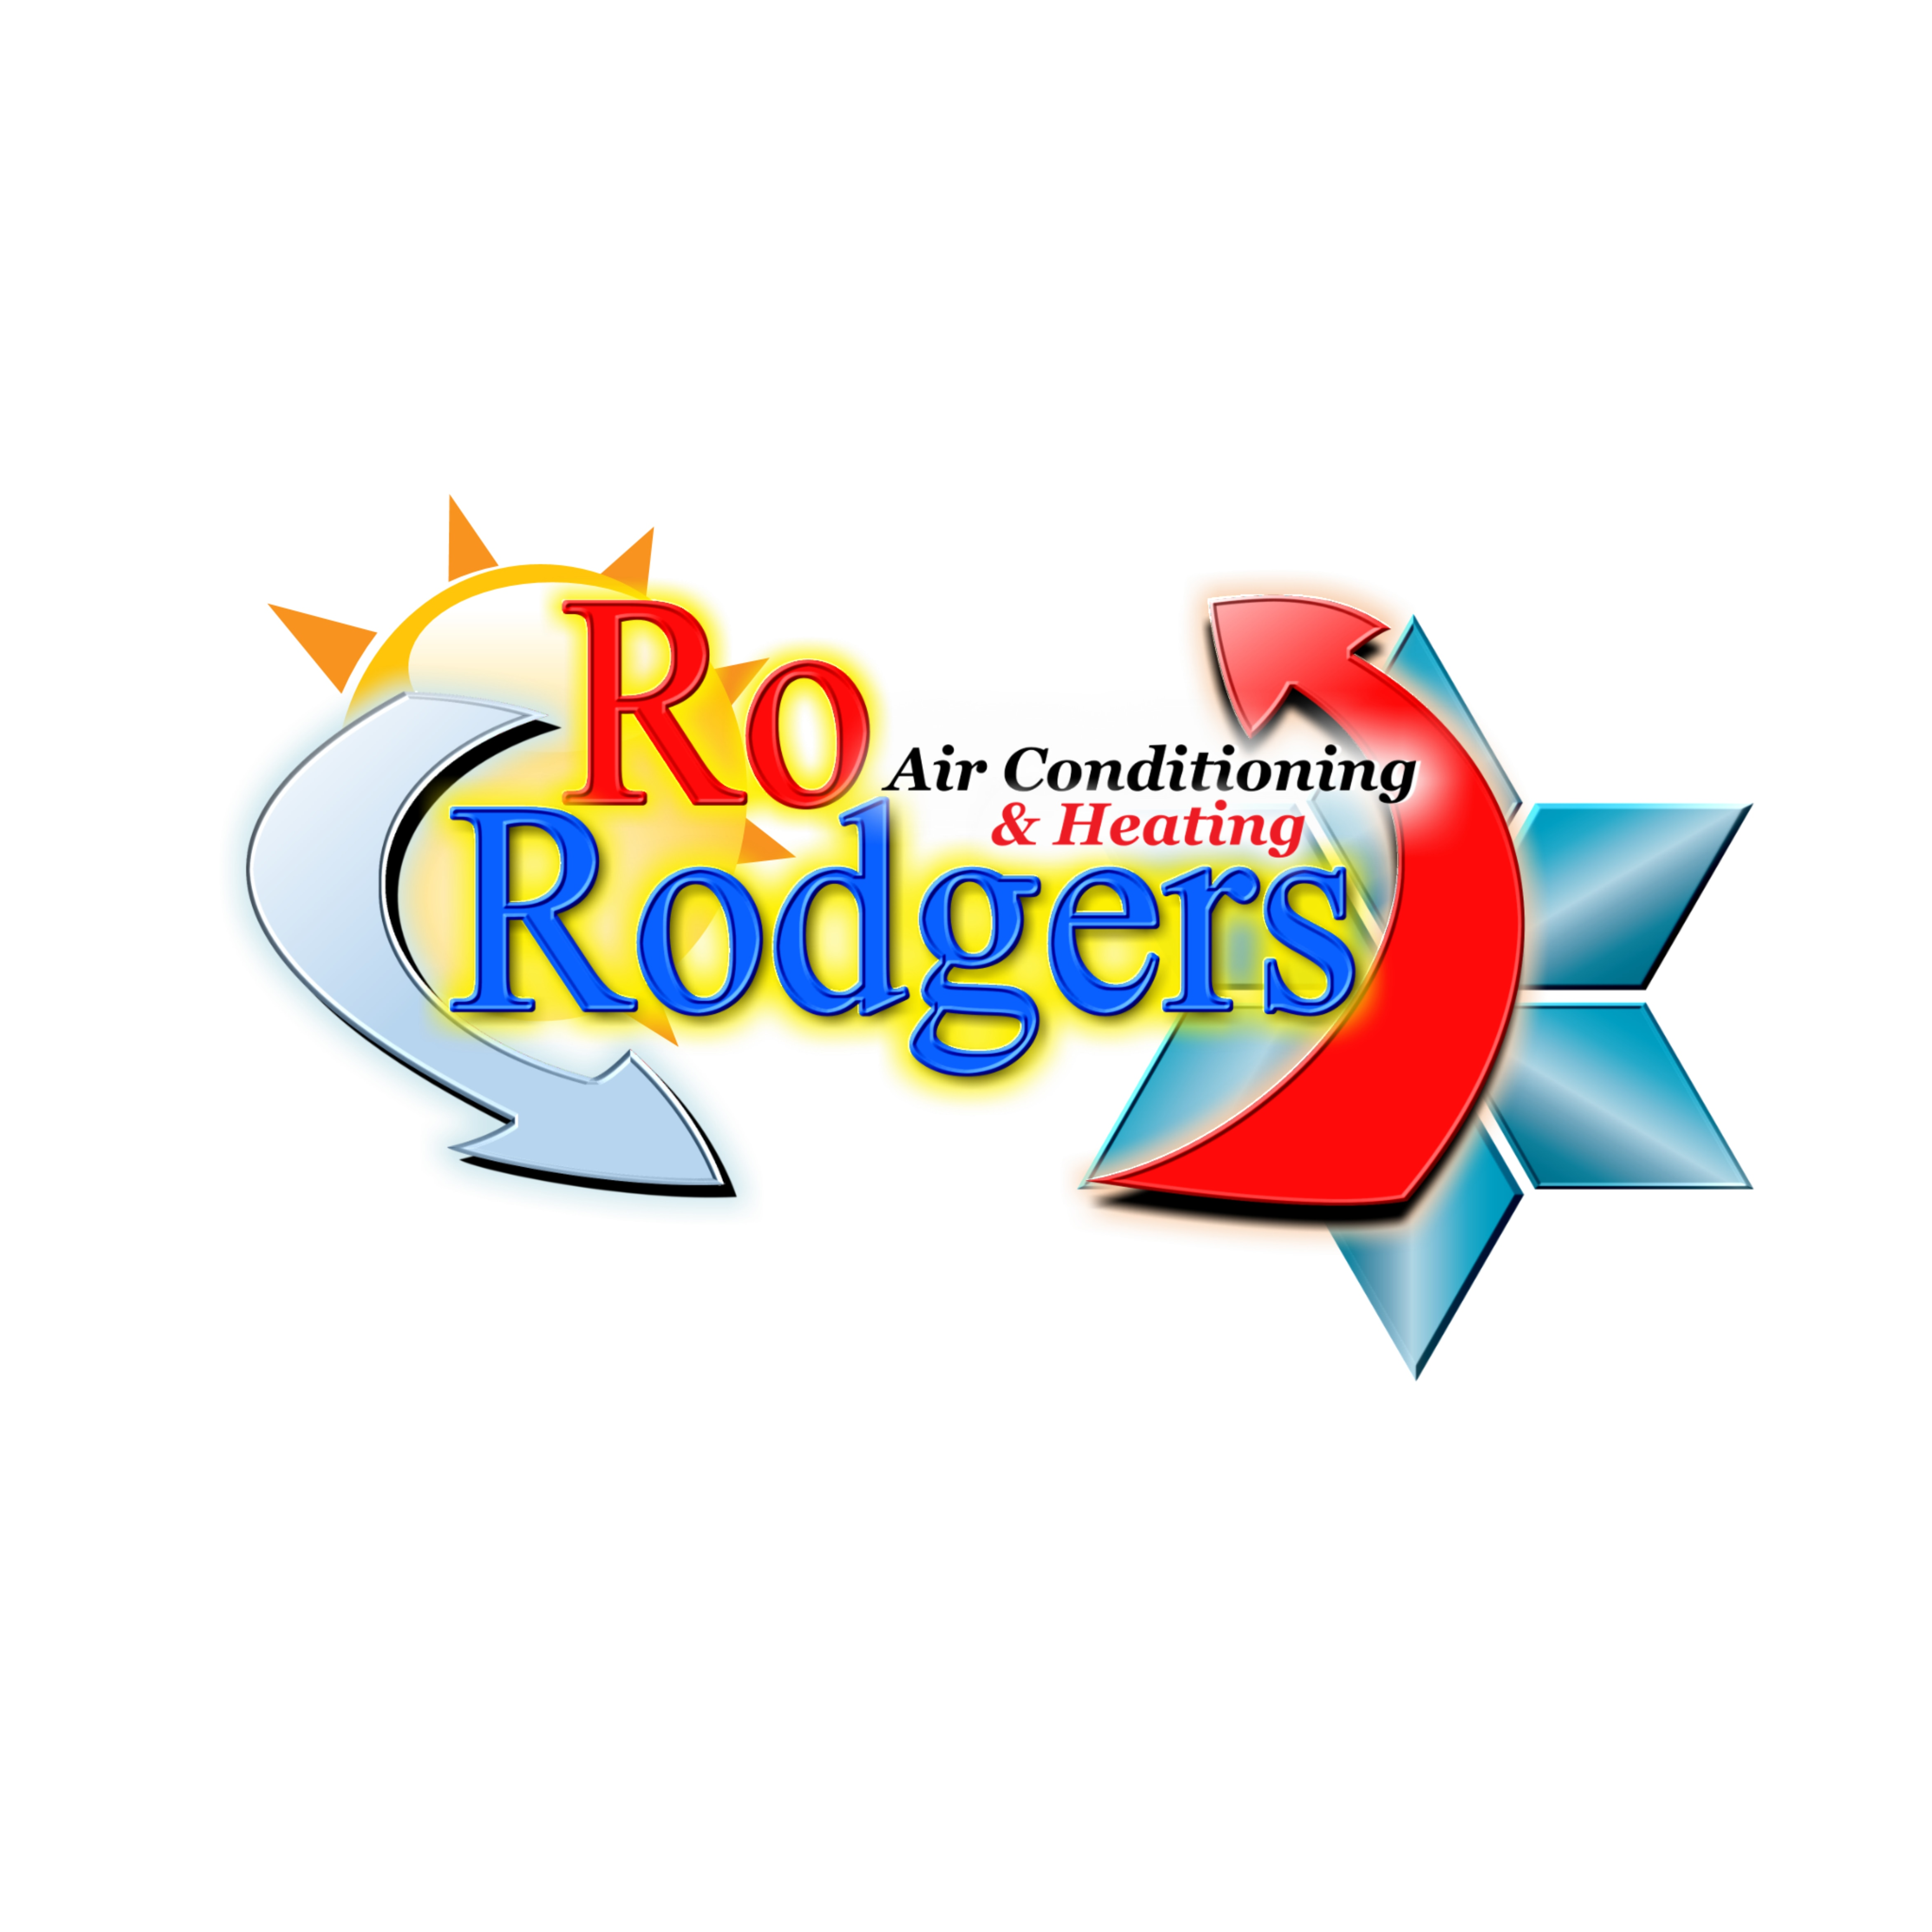 Ro Rodgers Air Conditioning & Heating LLC logo